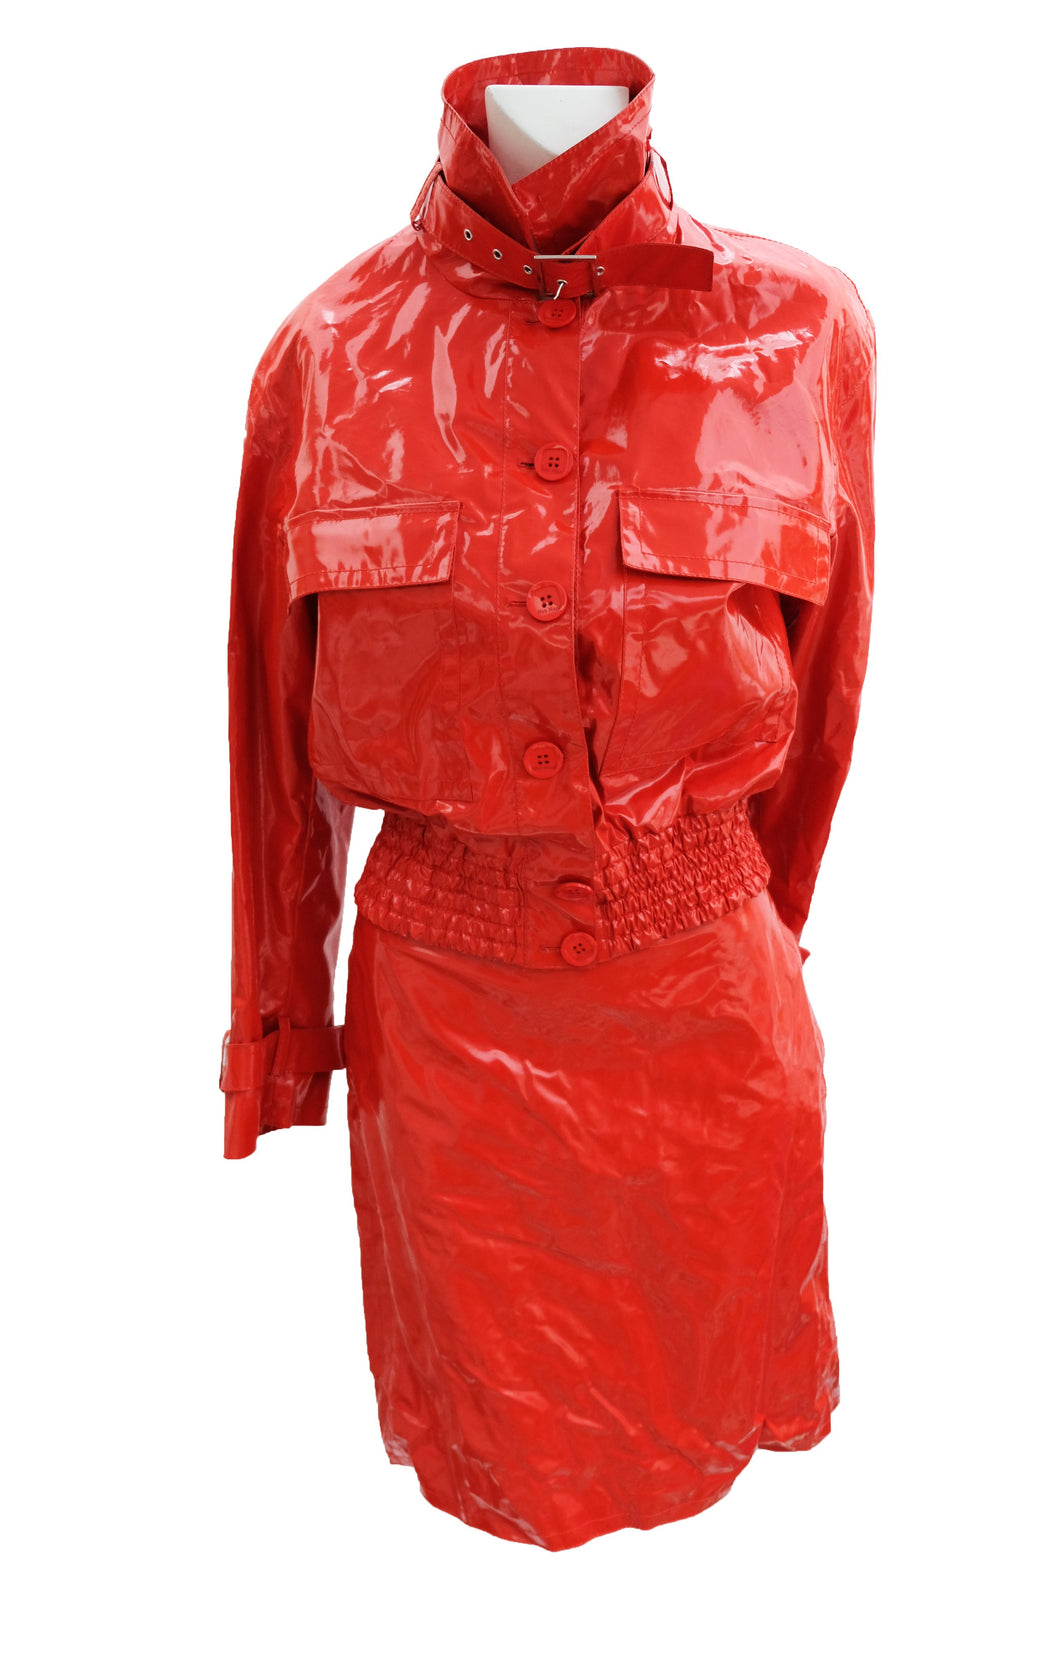 Max Mara Shiny Red Plastic 2 Piece Skirt Suit, UK12